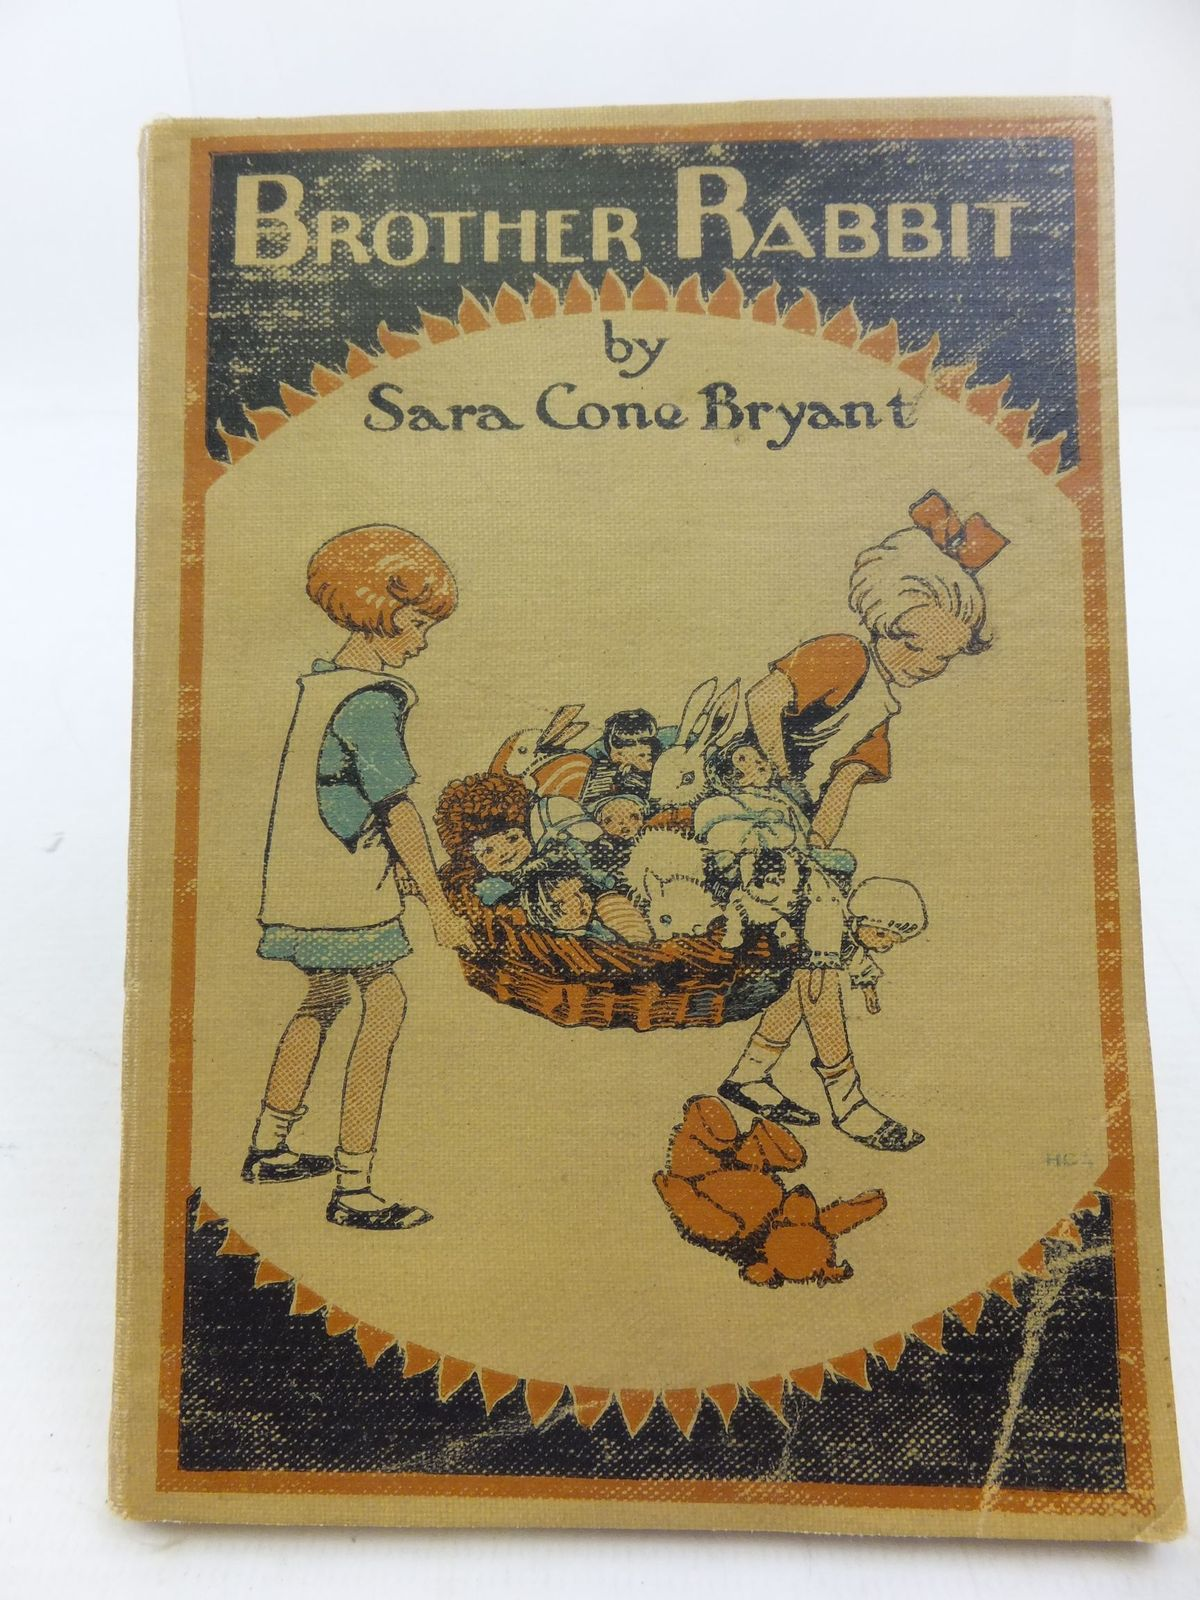 Photo of BROTHER RABBIT AND OTHER STORIES FOR LITTLE ONES written by Bryant, Sara Cone illustrated by Appleton, Honor C. Wilson, Patten published by George G. Harrap & Co. Ltd. (STOCK CODE: 1108923)  for sale by Stella & Rose's Books